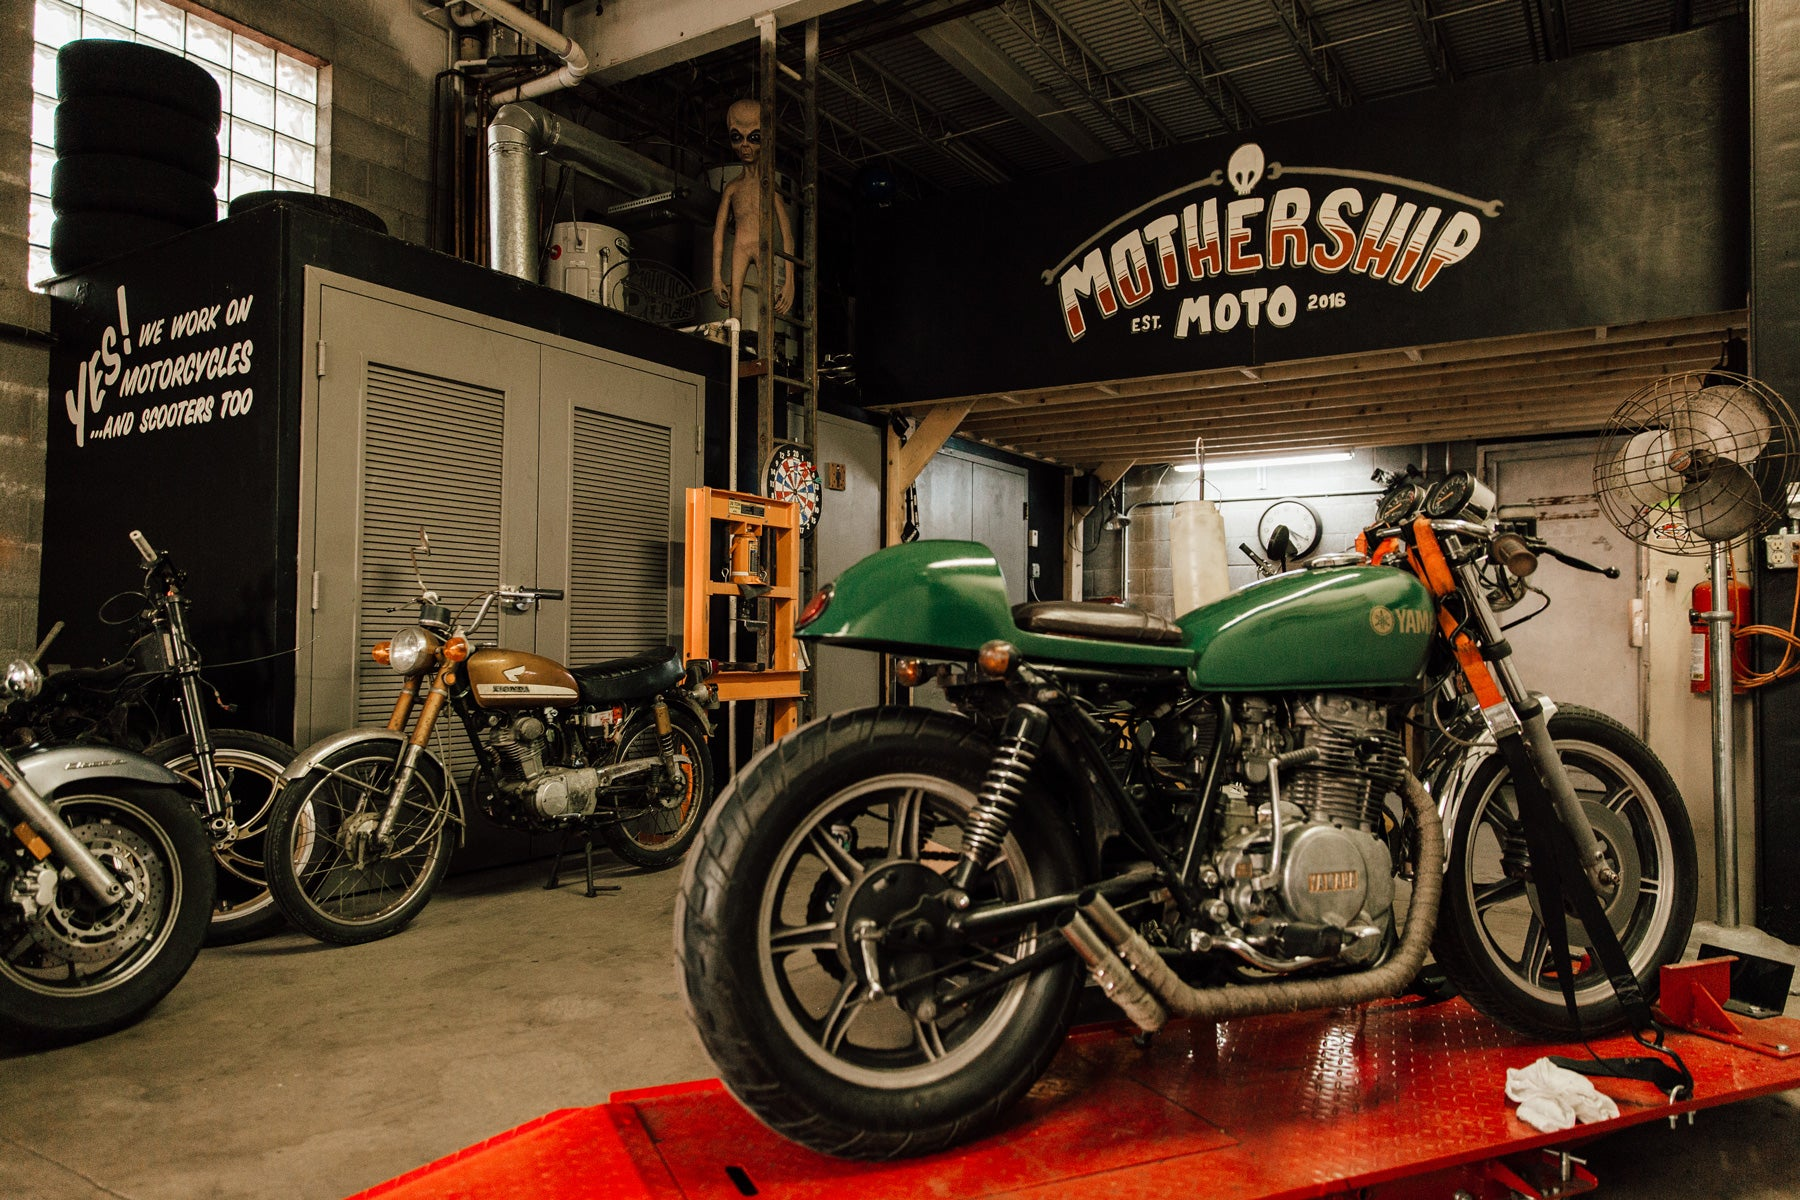 Mothership Moto Repair Shop Motorcycles Pittsburgh Penn Avenue